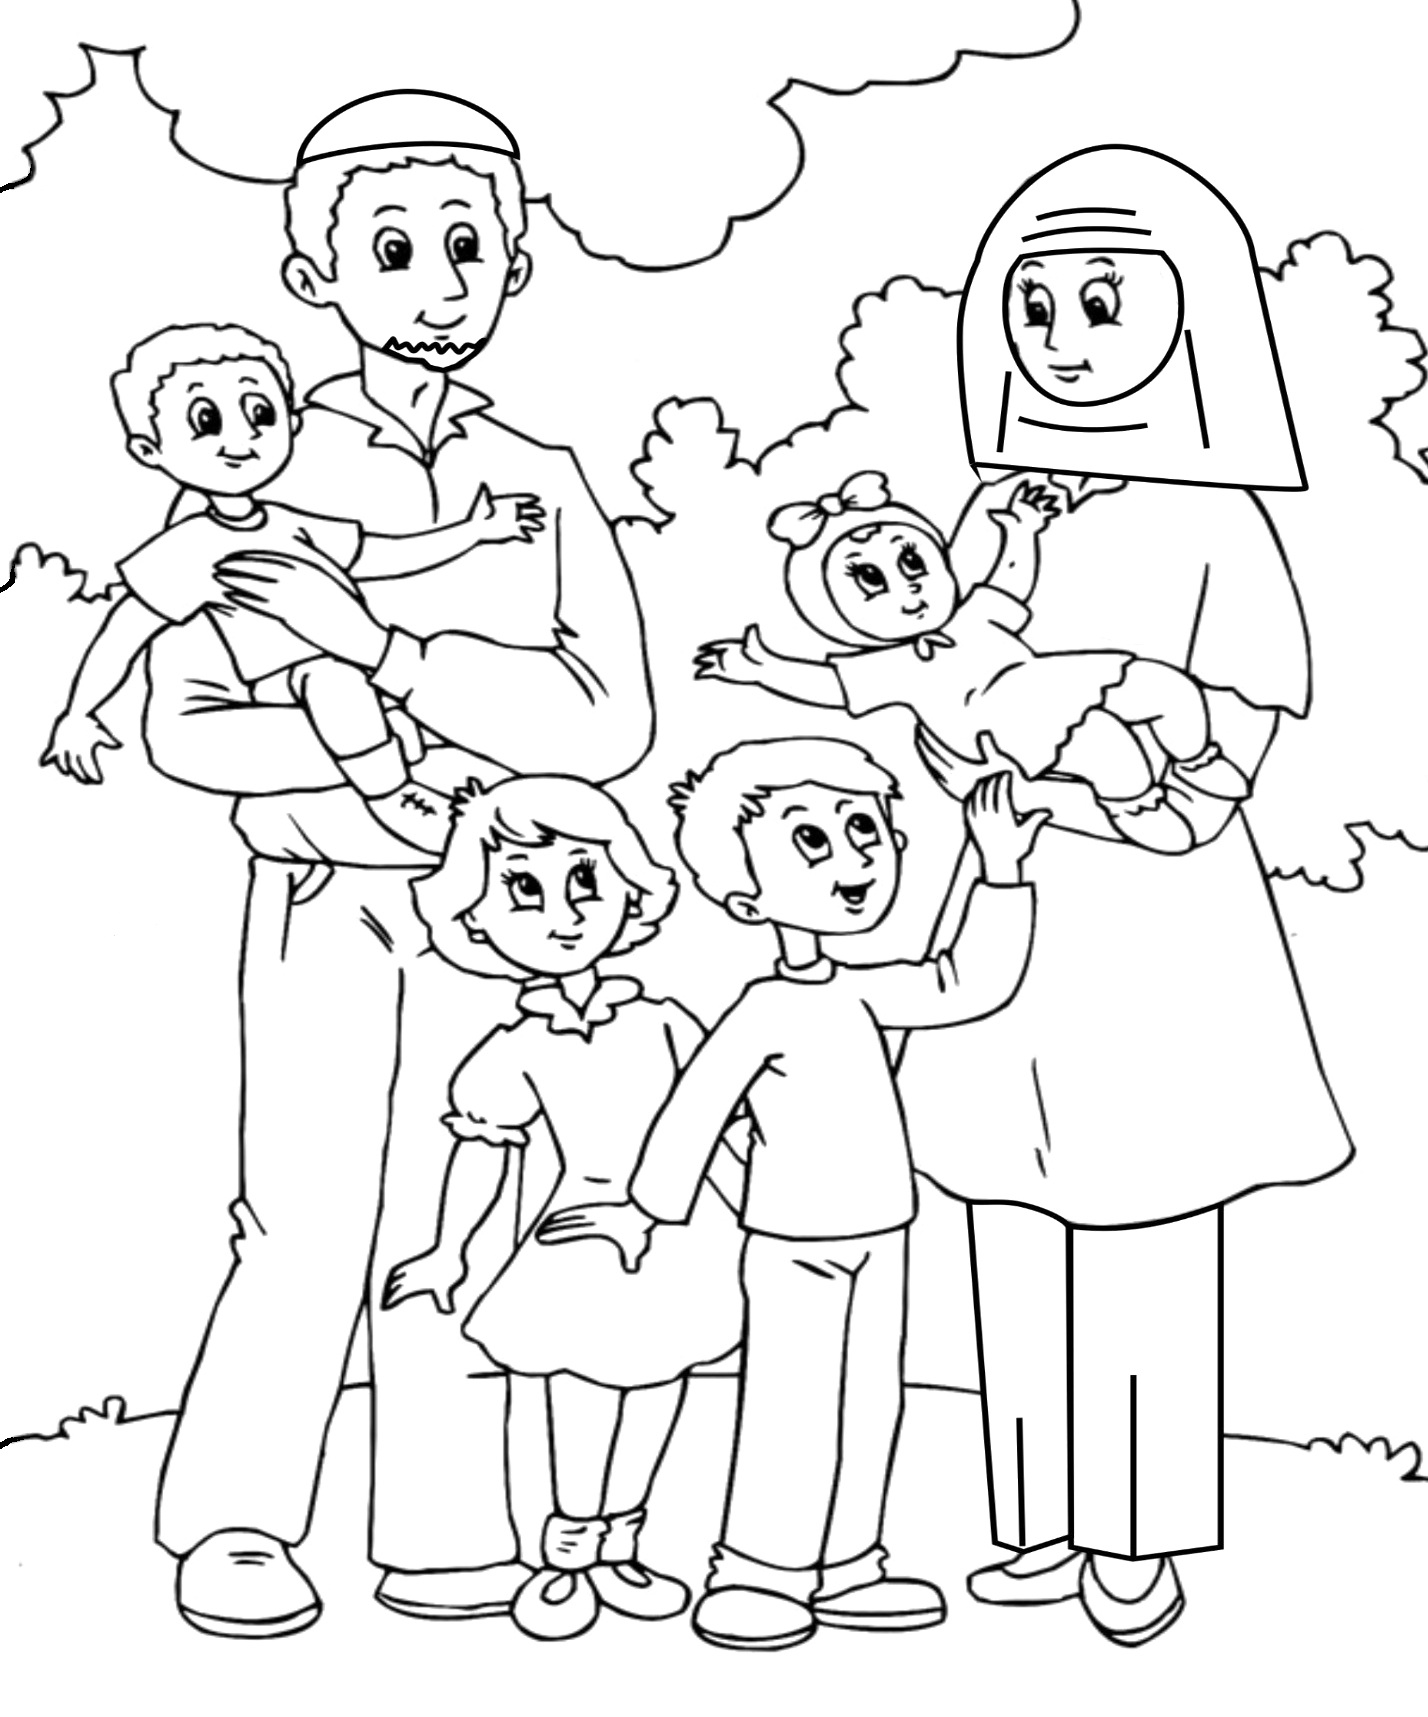 Family Picture Drawing At Getdrawings